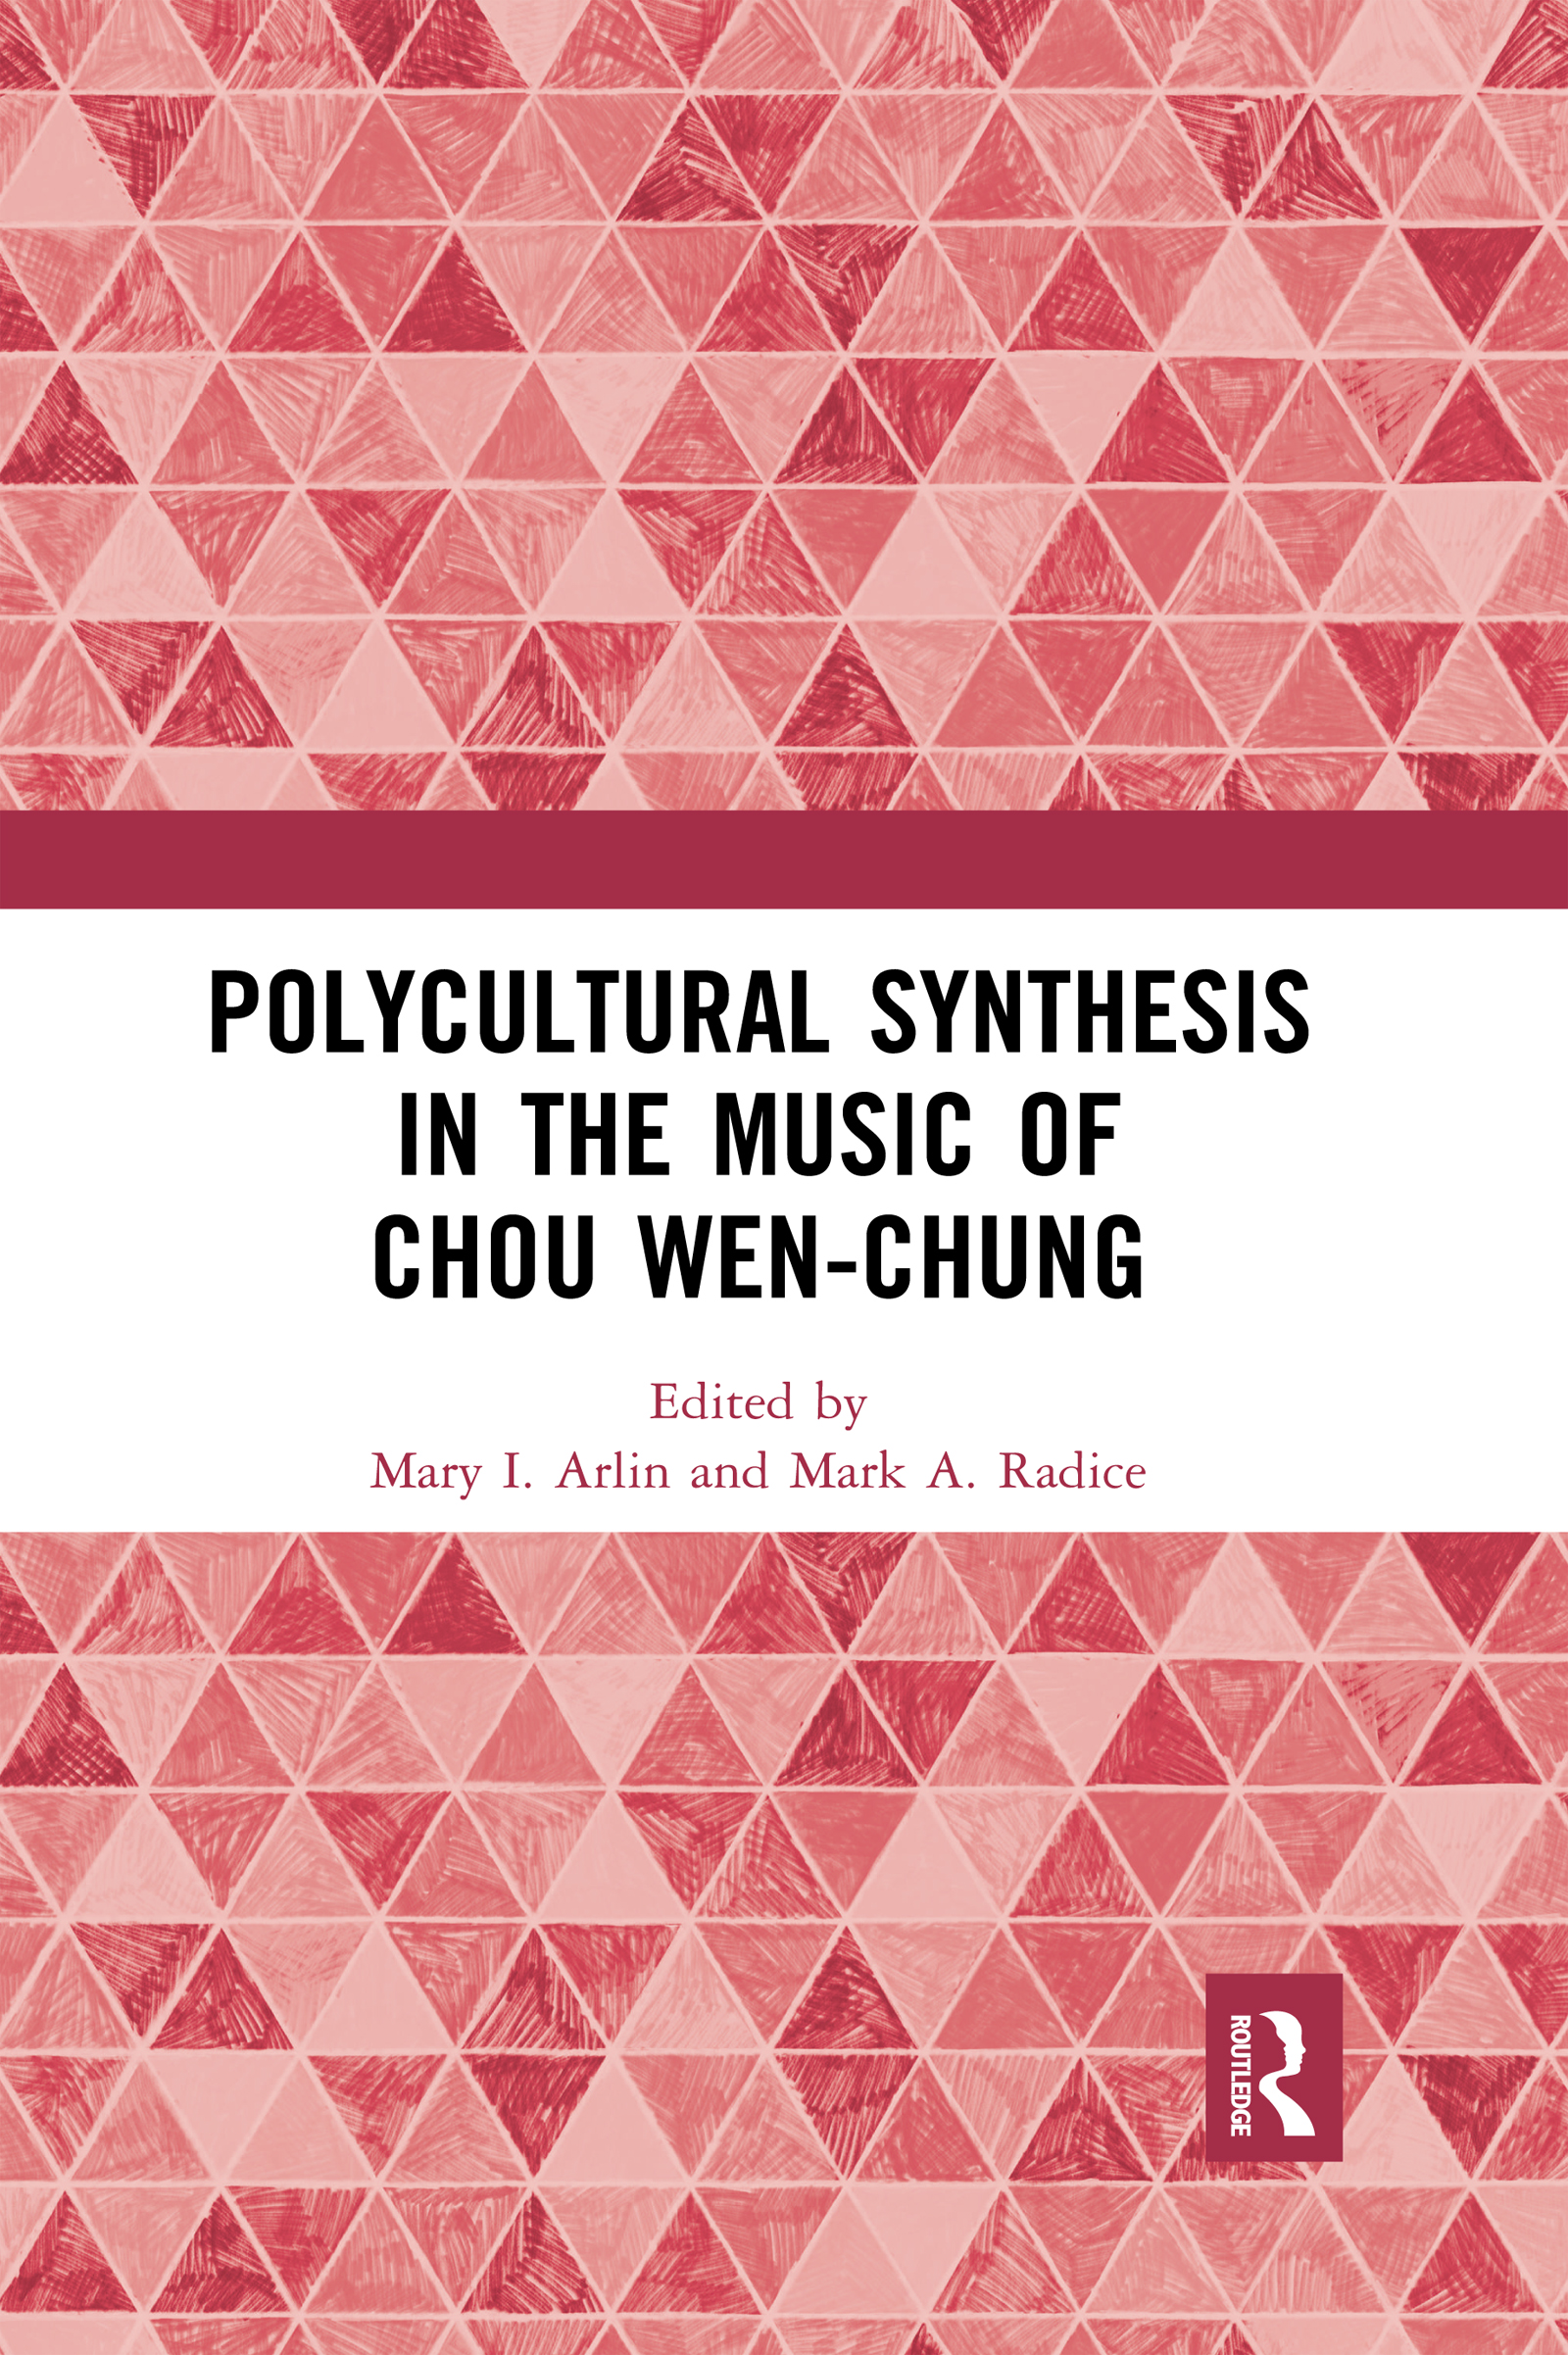 Symmetry as a cultural determinant in the music of Chou Wen-chung